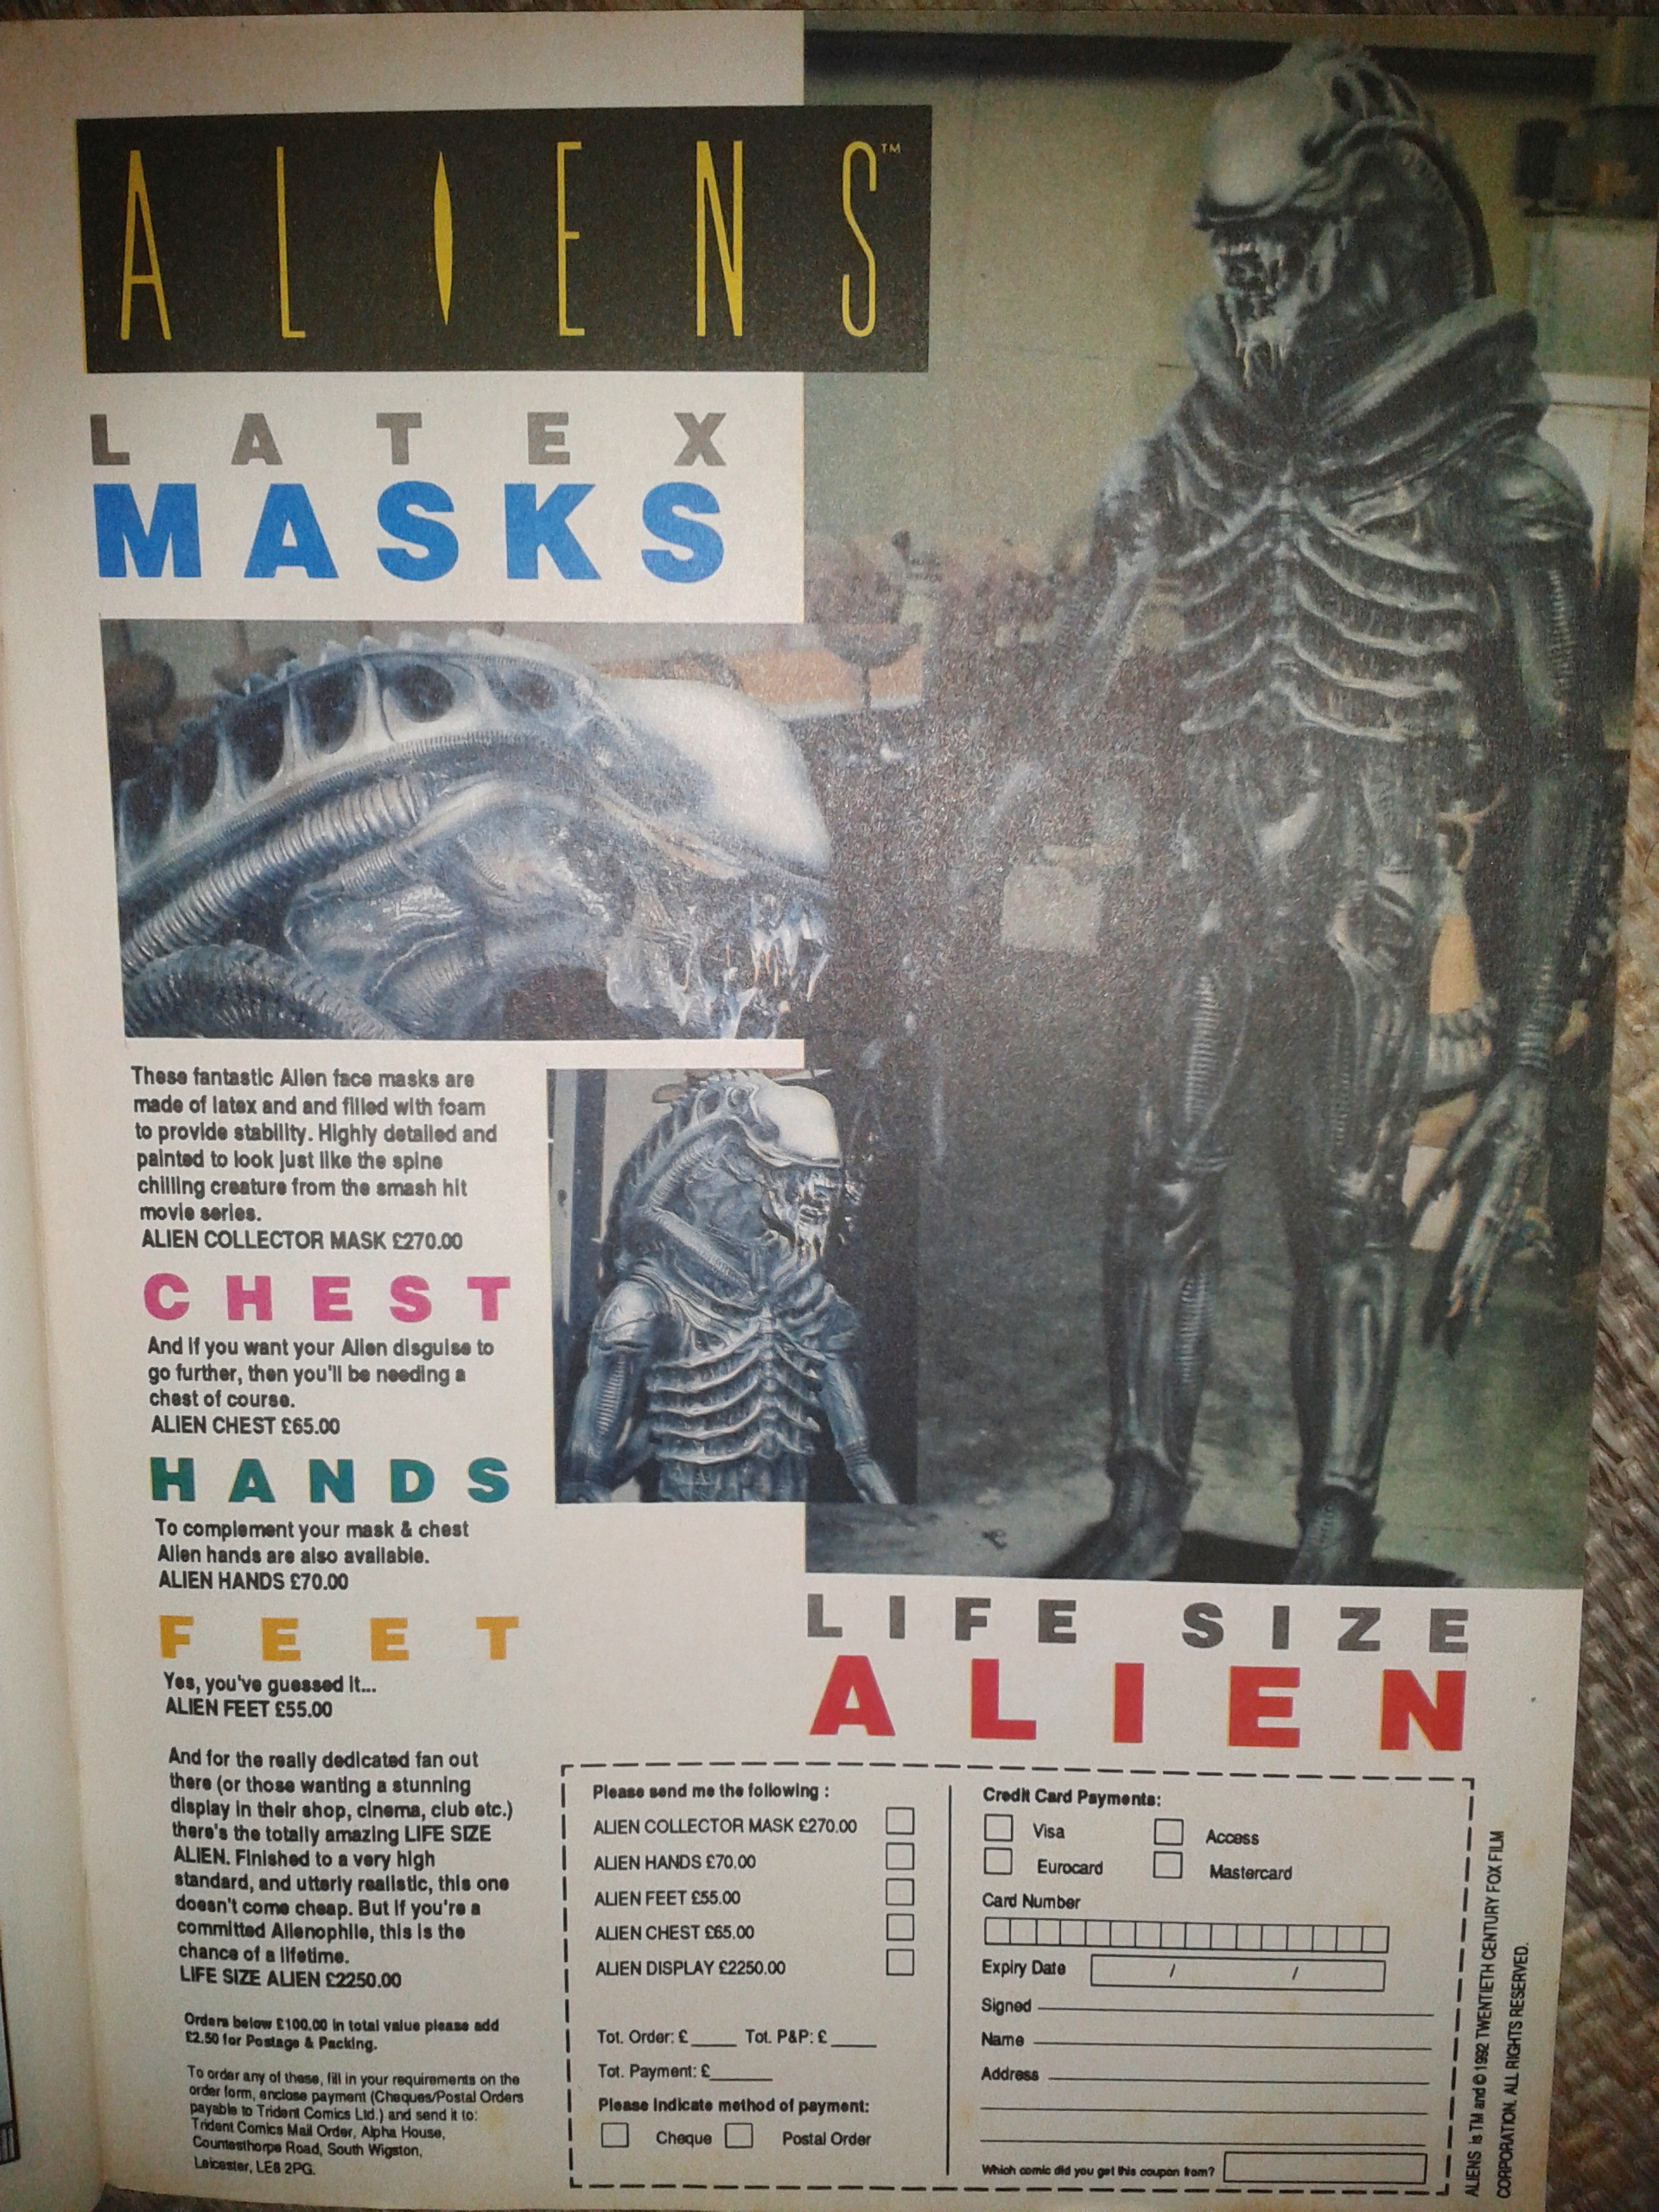 Aliens Merchandise Advert - 1990s